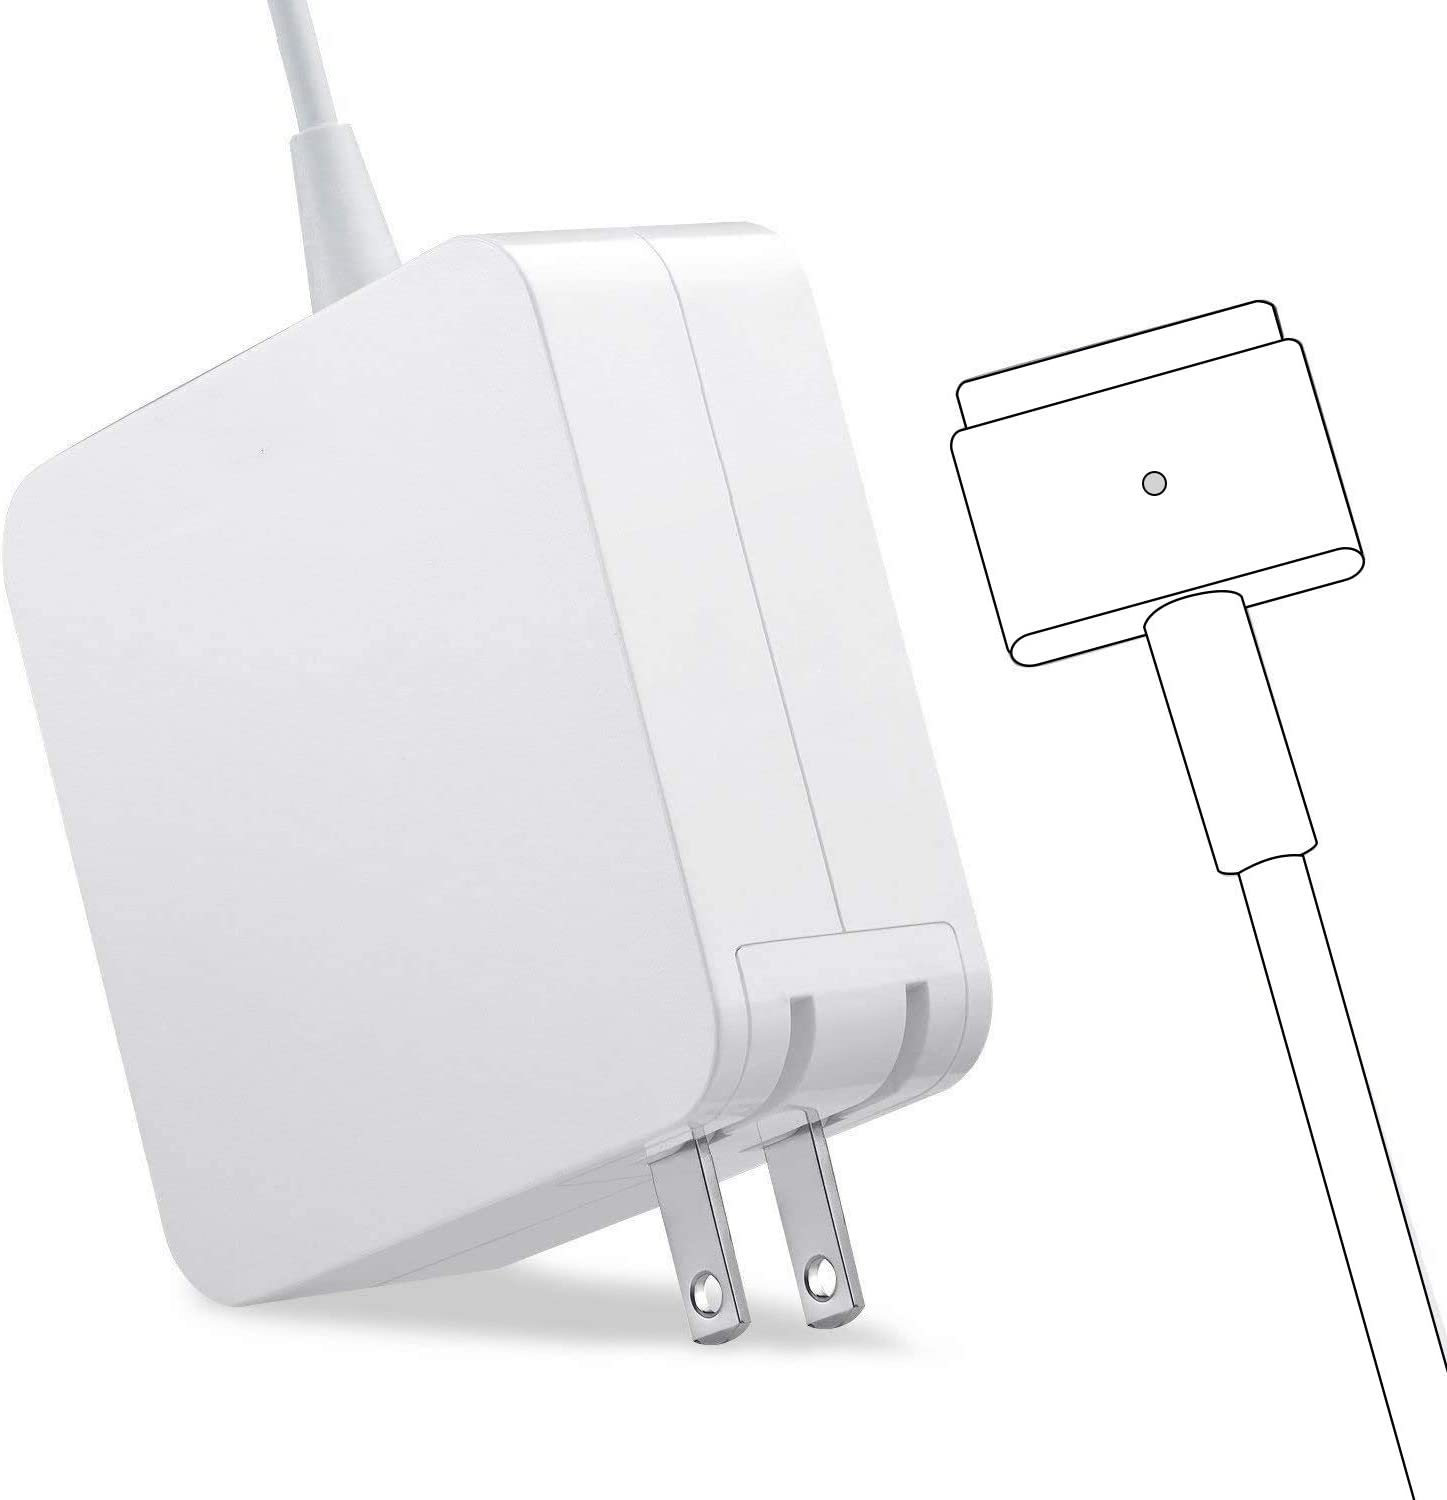 Mac Book Pro Charger, AC 85w Magnetic T-Tip Power Adapter Charger Compatible with MacBook Pro 17/15/13 Inch (After Mid 2012)